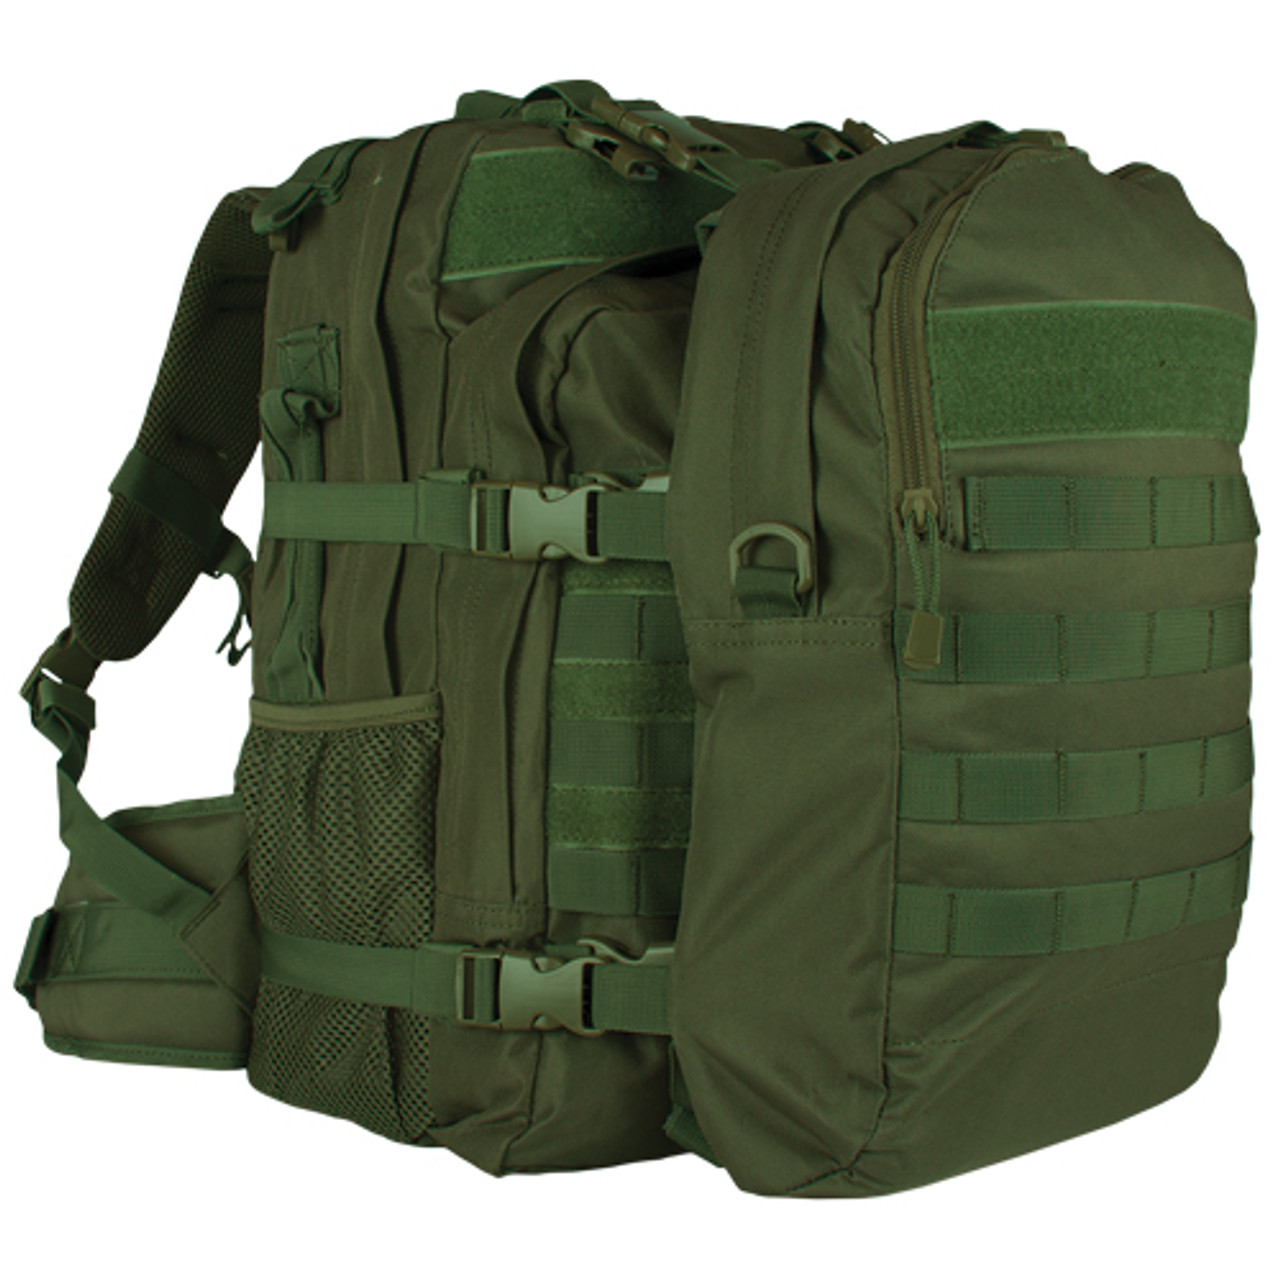 Fox Tactical DUAL TACTICAL PACK SYSTEM-OLIVE DRAB